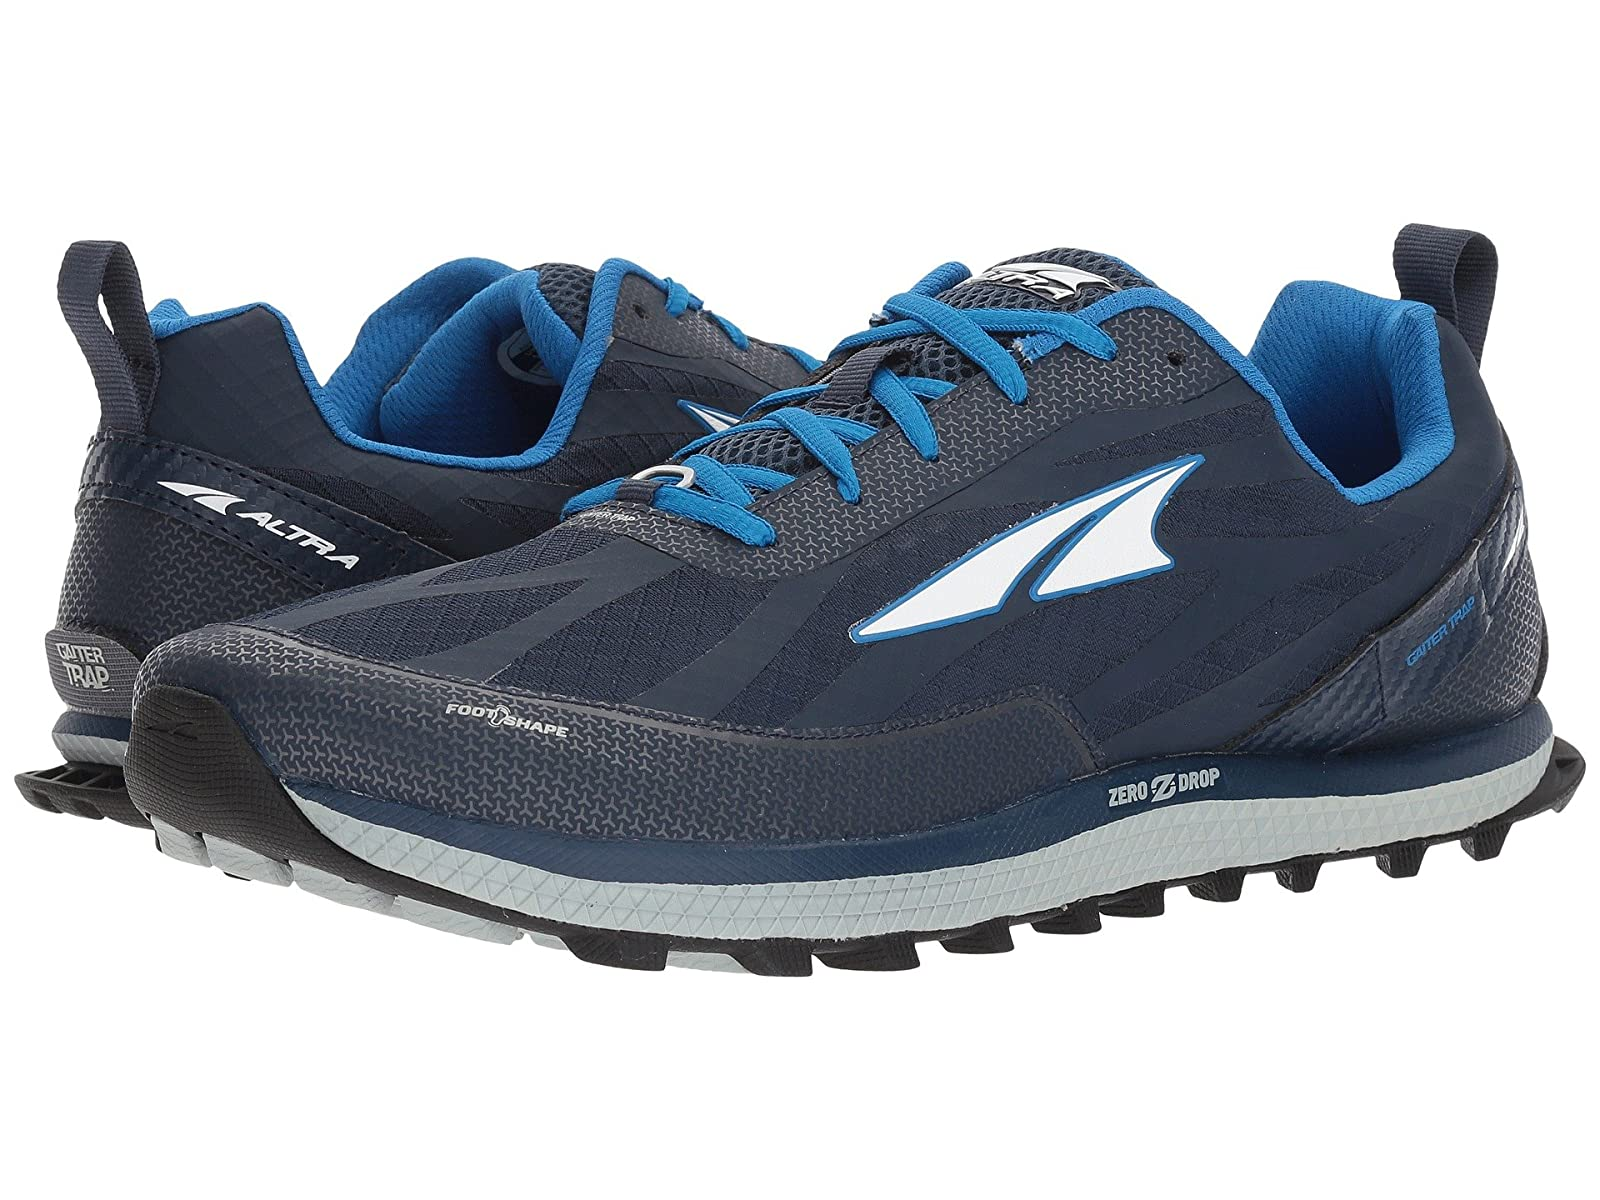 Altra Footwear Superior 3.5Atmospheric grades have affordable shoes